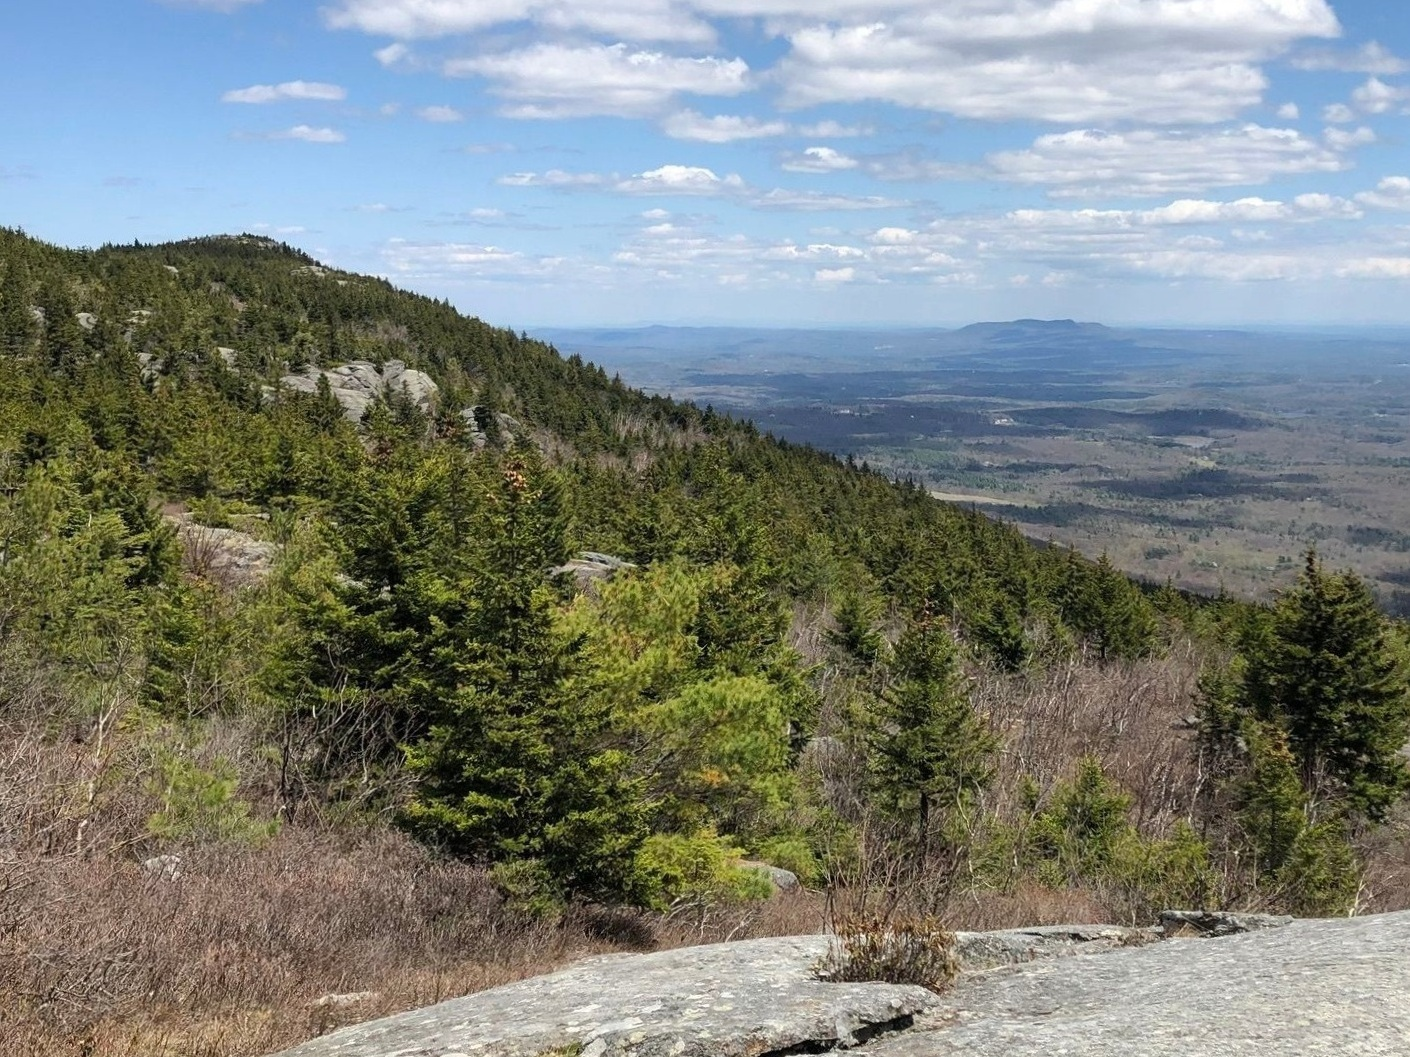 Mount Monadnock - Jaffrey, NH   Via White Dot Cross Trail   Completed: 06/10/18